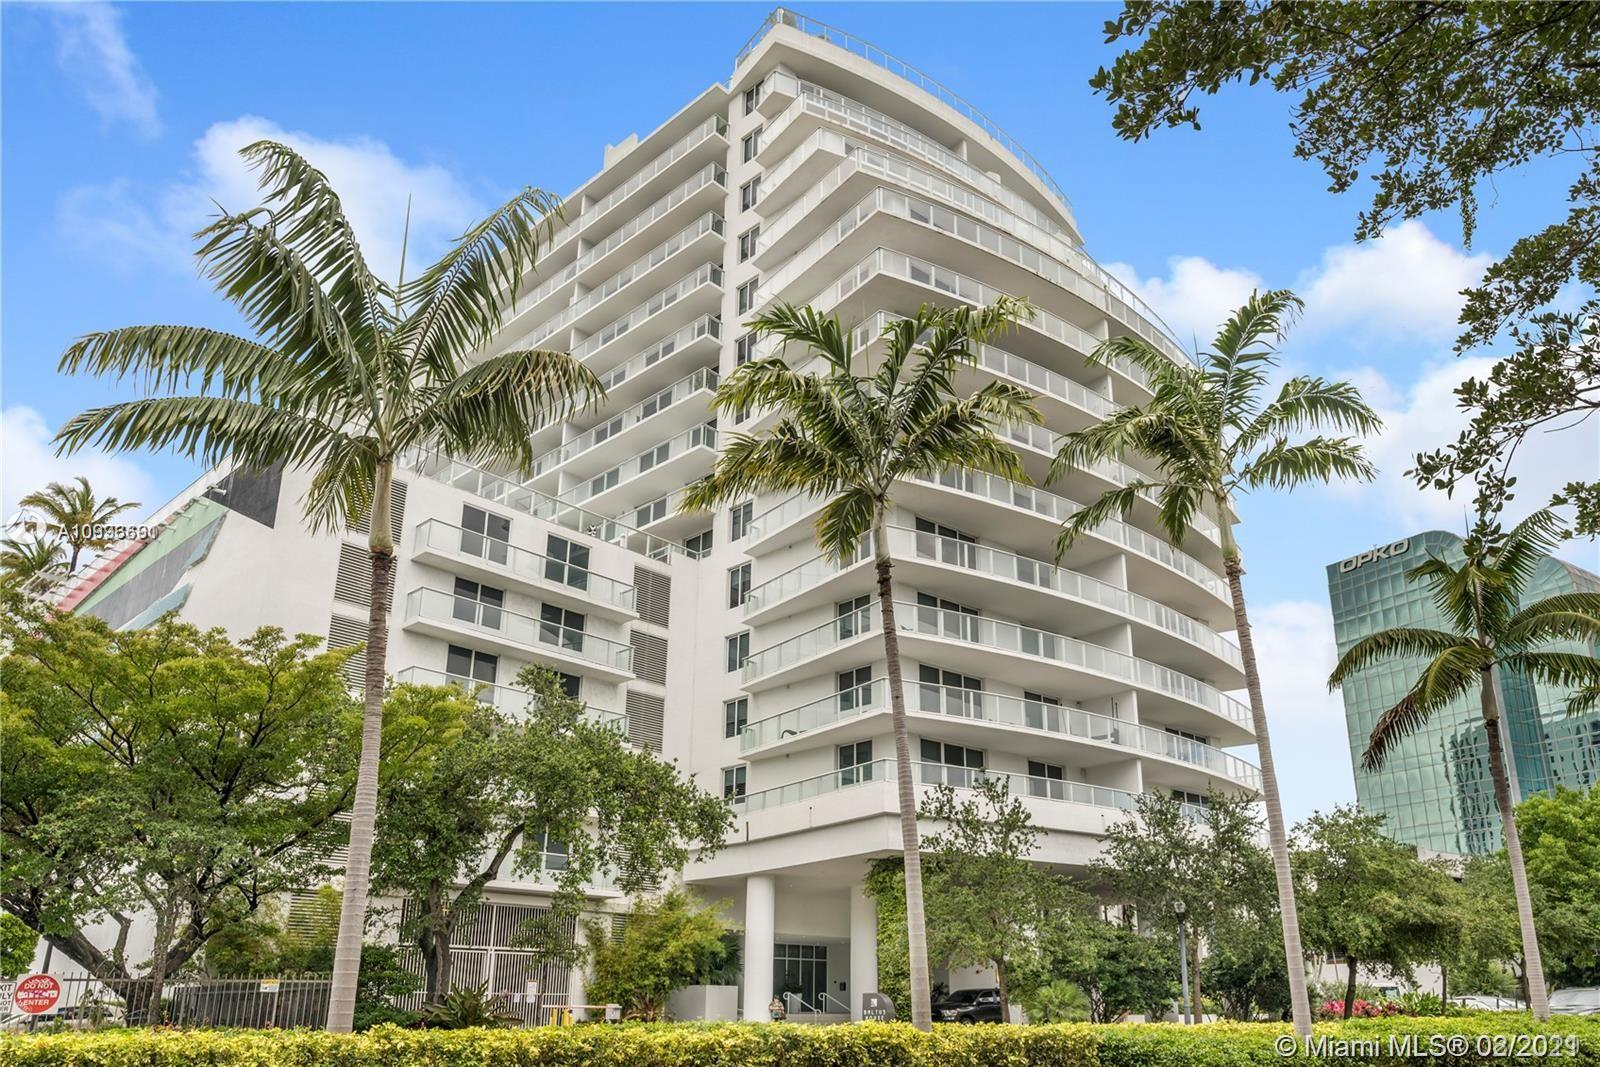 Baltus House #514 - 4250 Biscayne Blvd #514, Miami, FL 33137